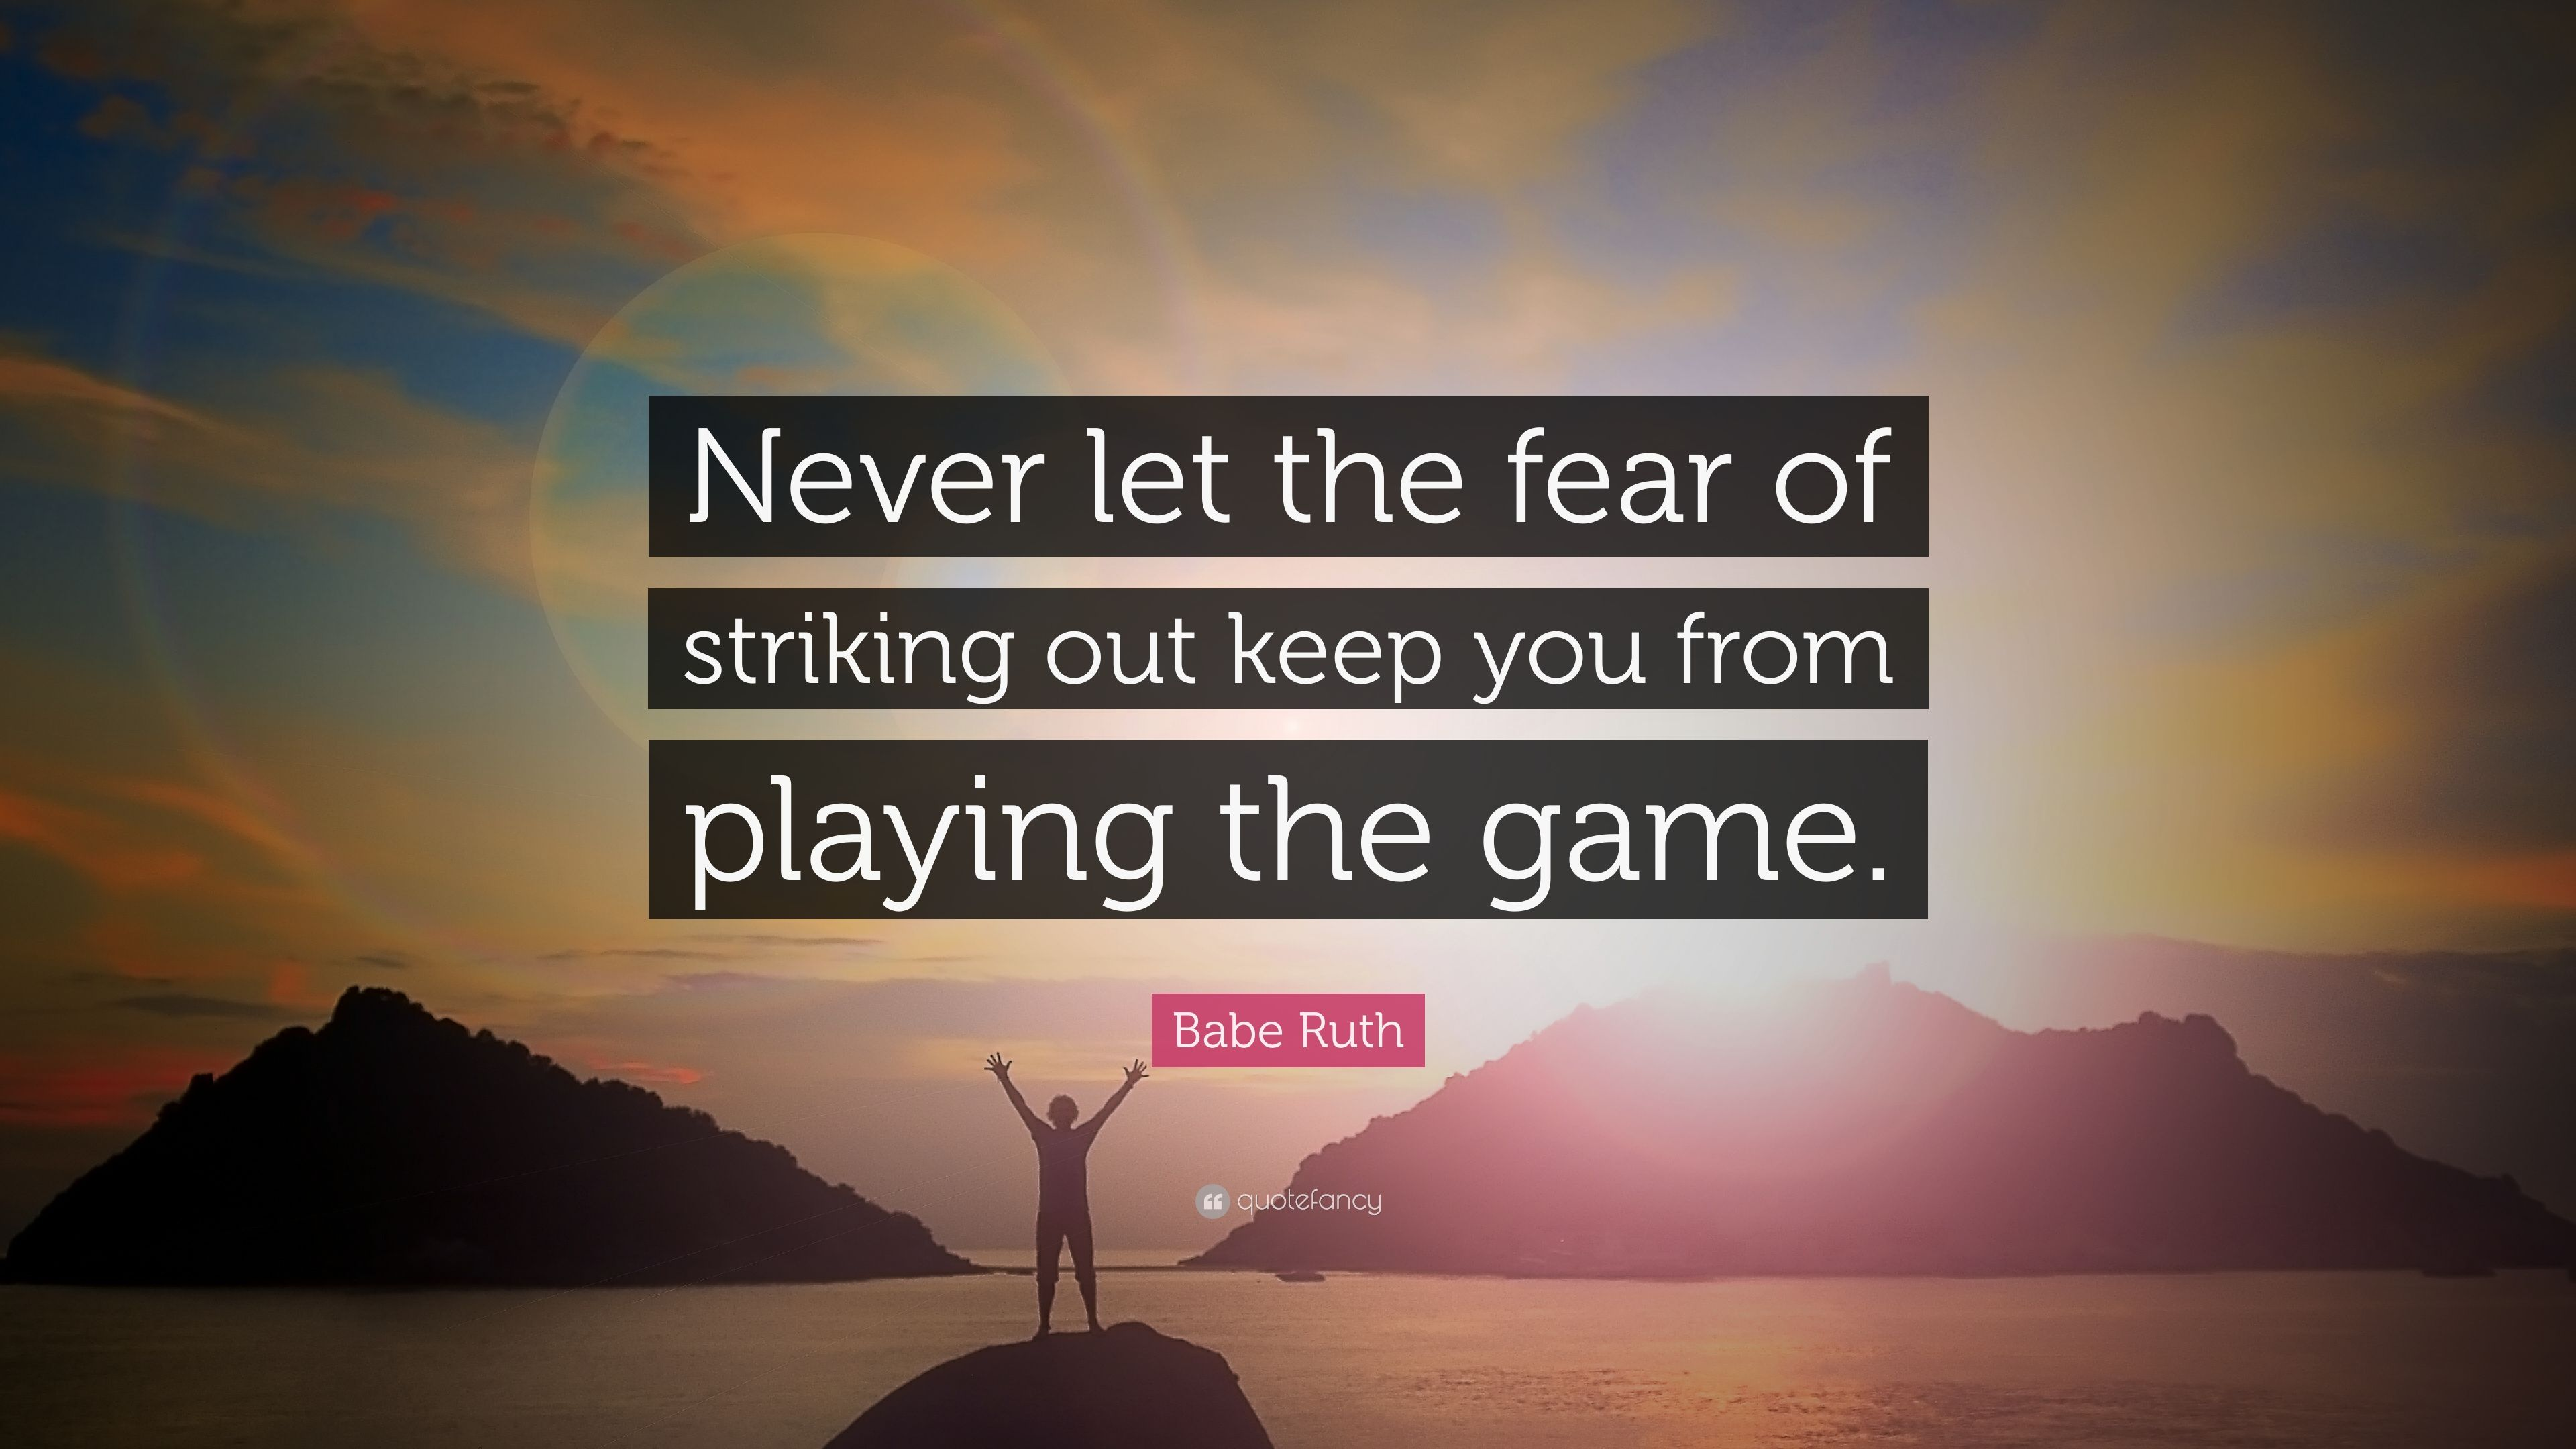 Babe Ruth Quote Never Let The Fear Of Striking Out Keep You From